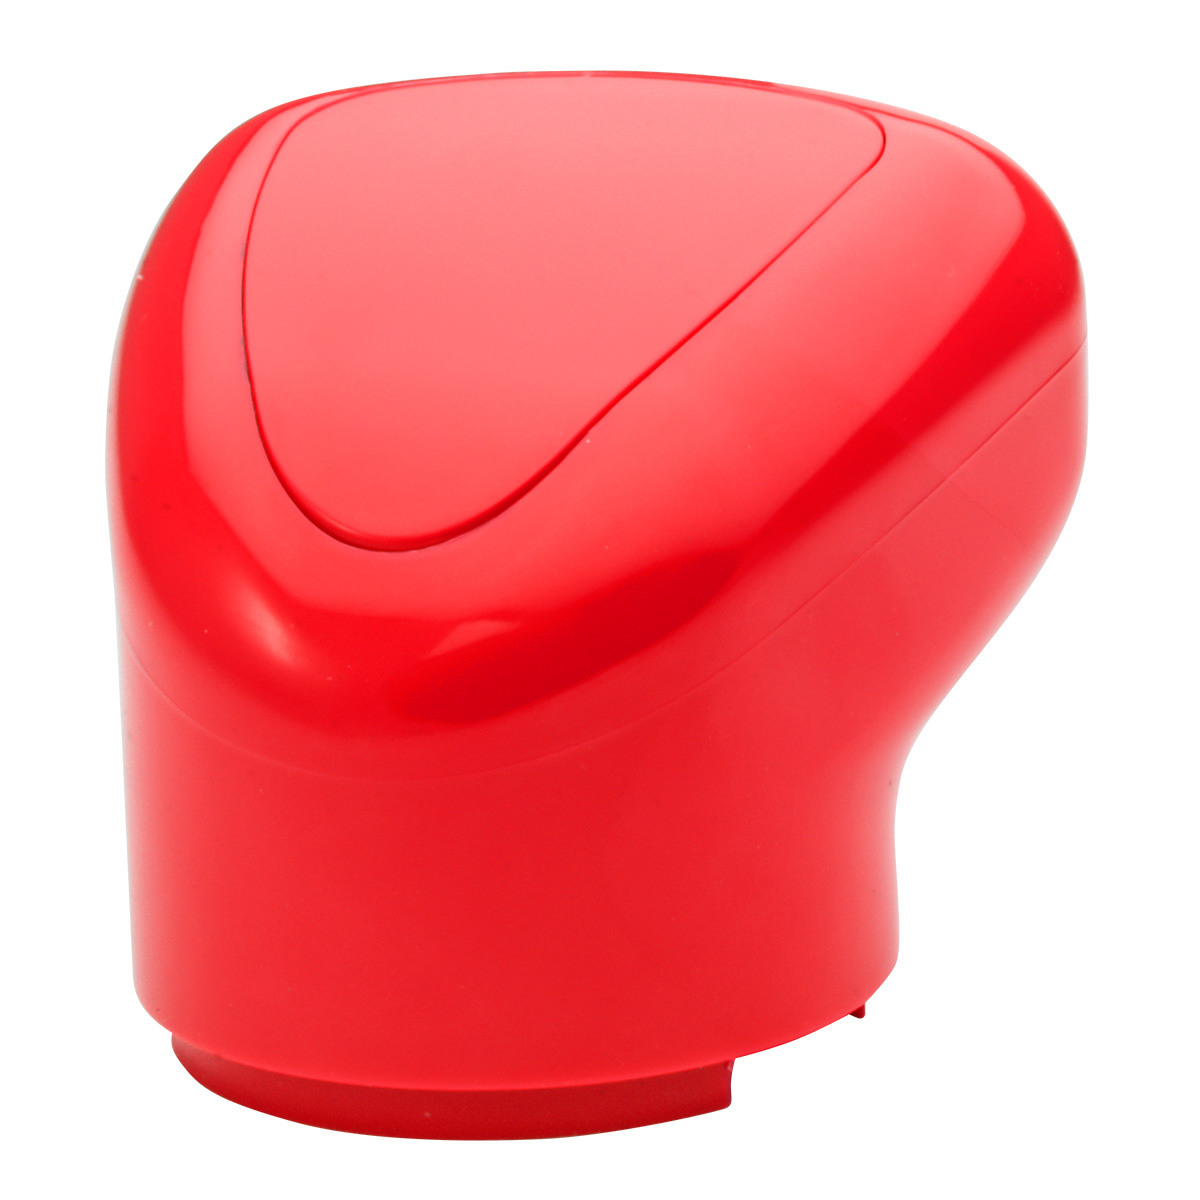 Gear Shift Knob - Red